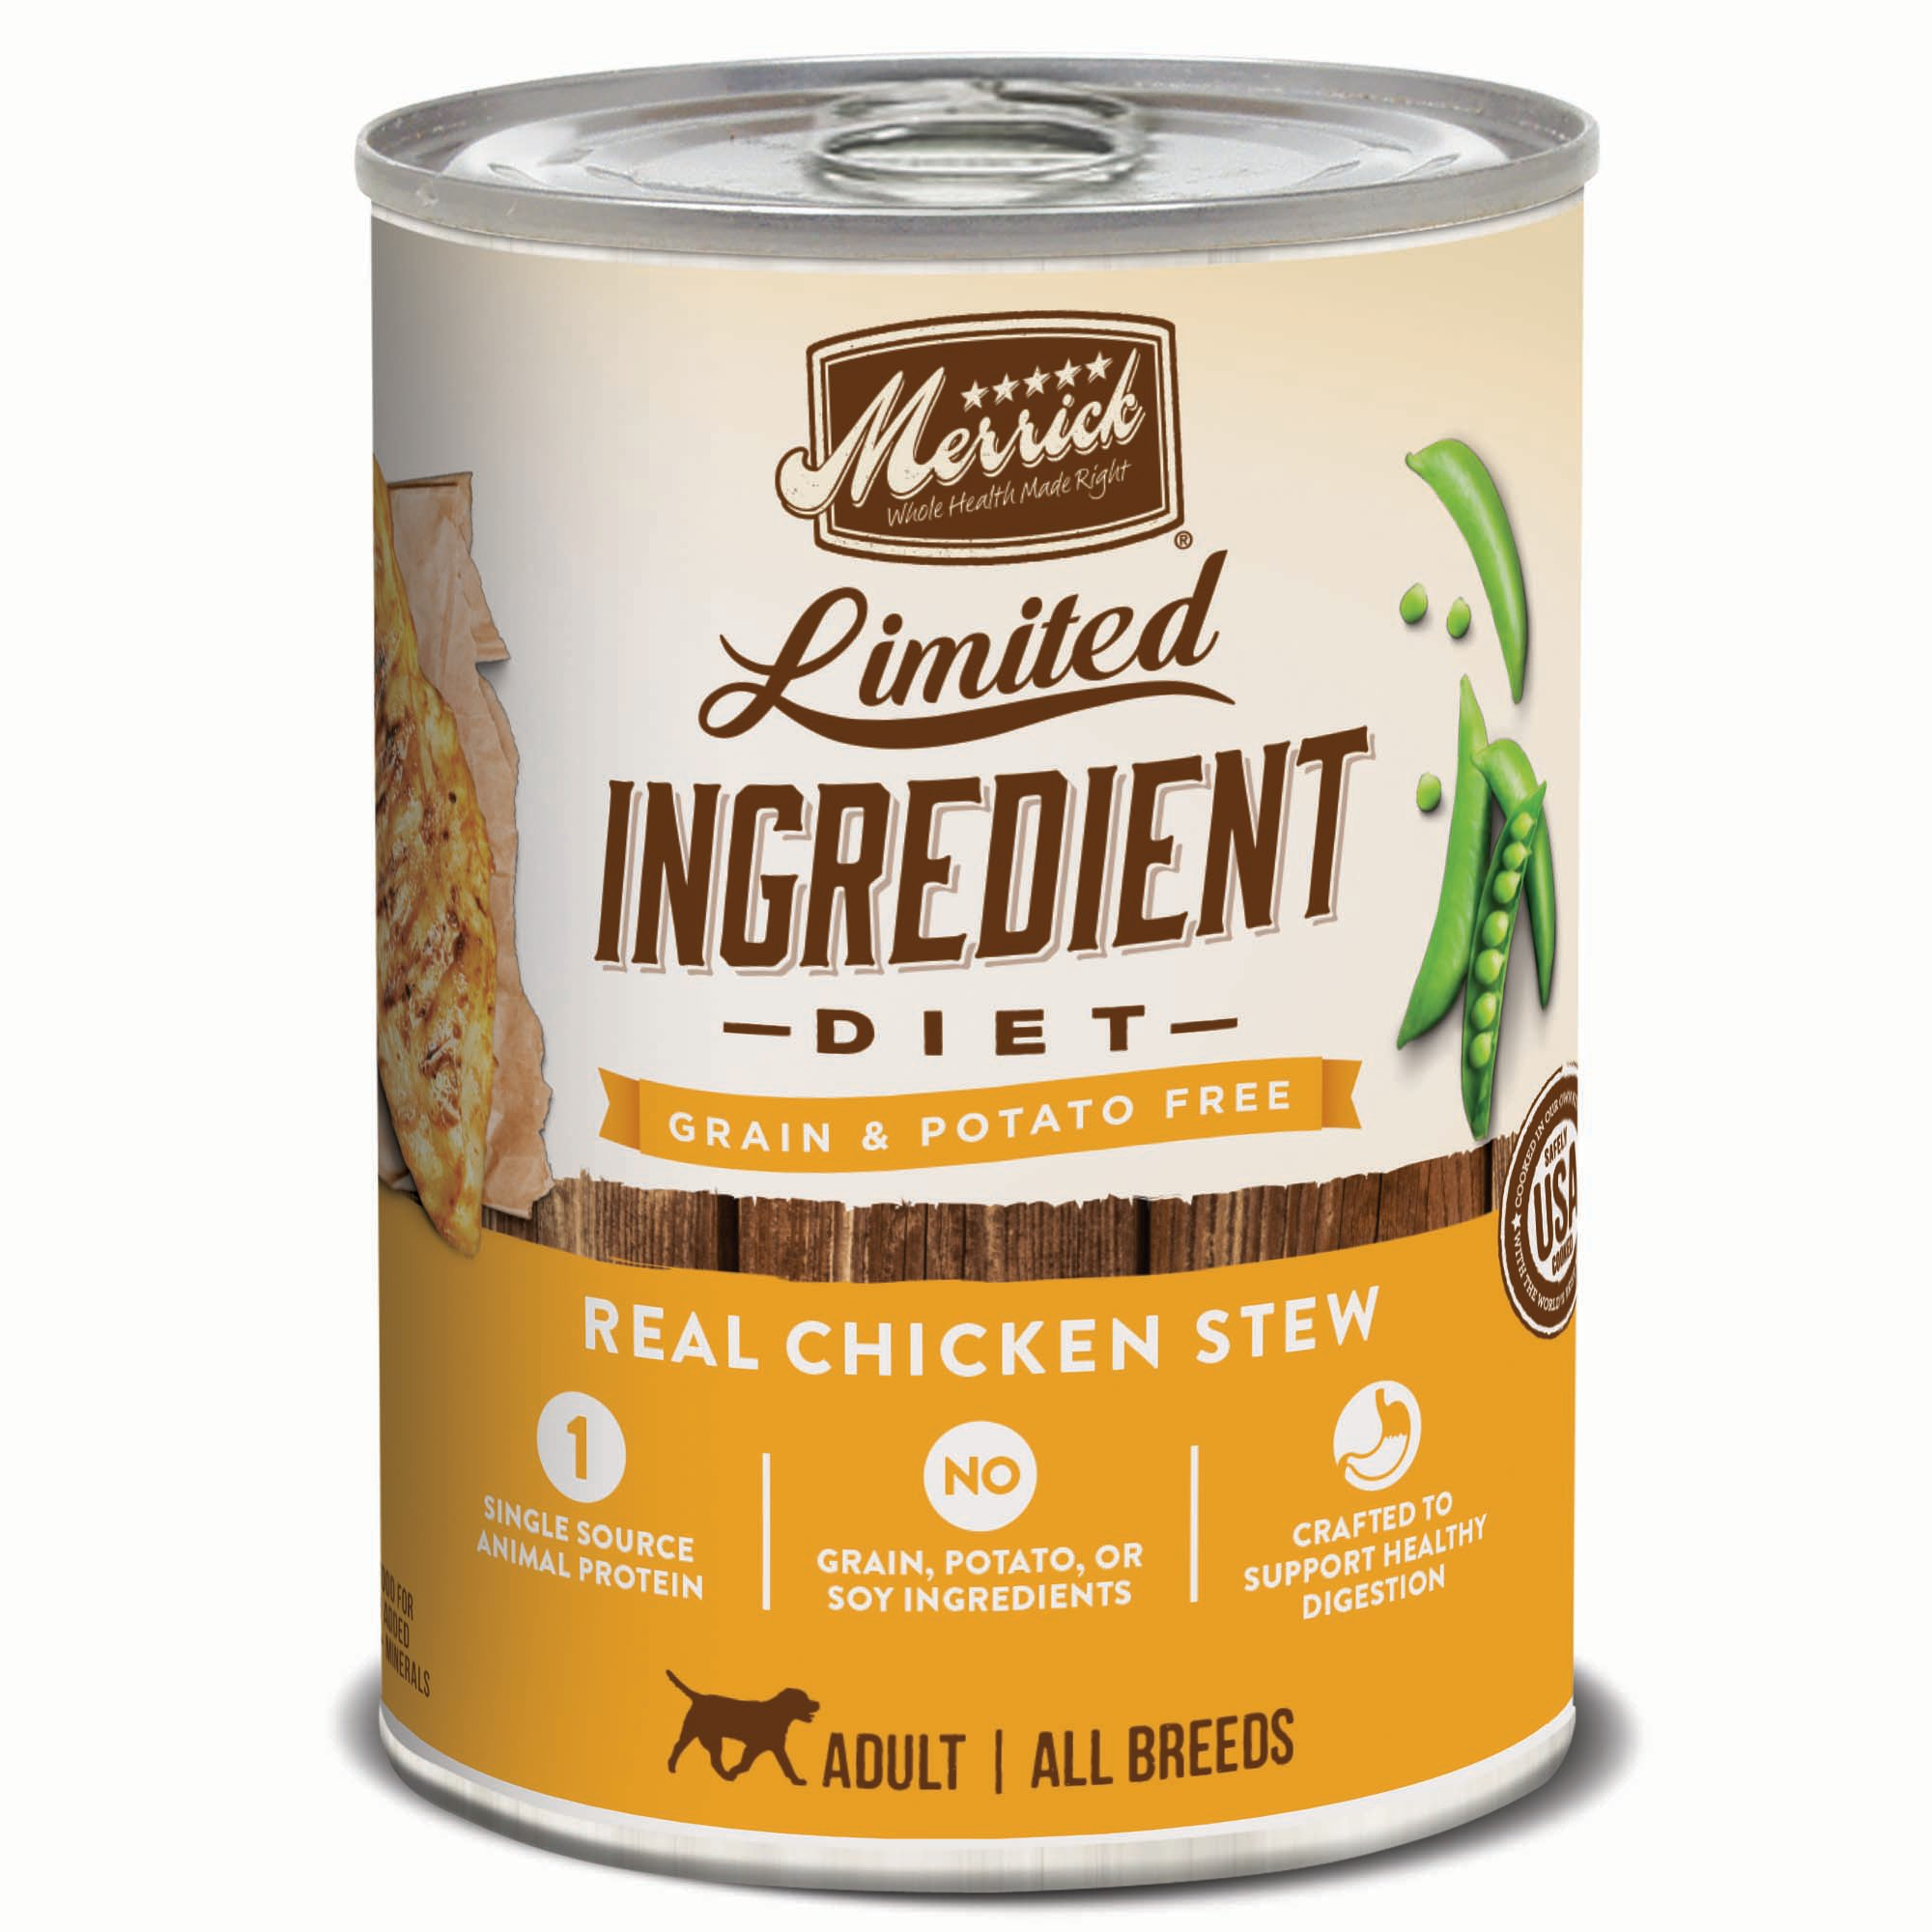 Limited Ingredient Dog Food Canned